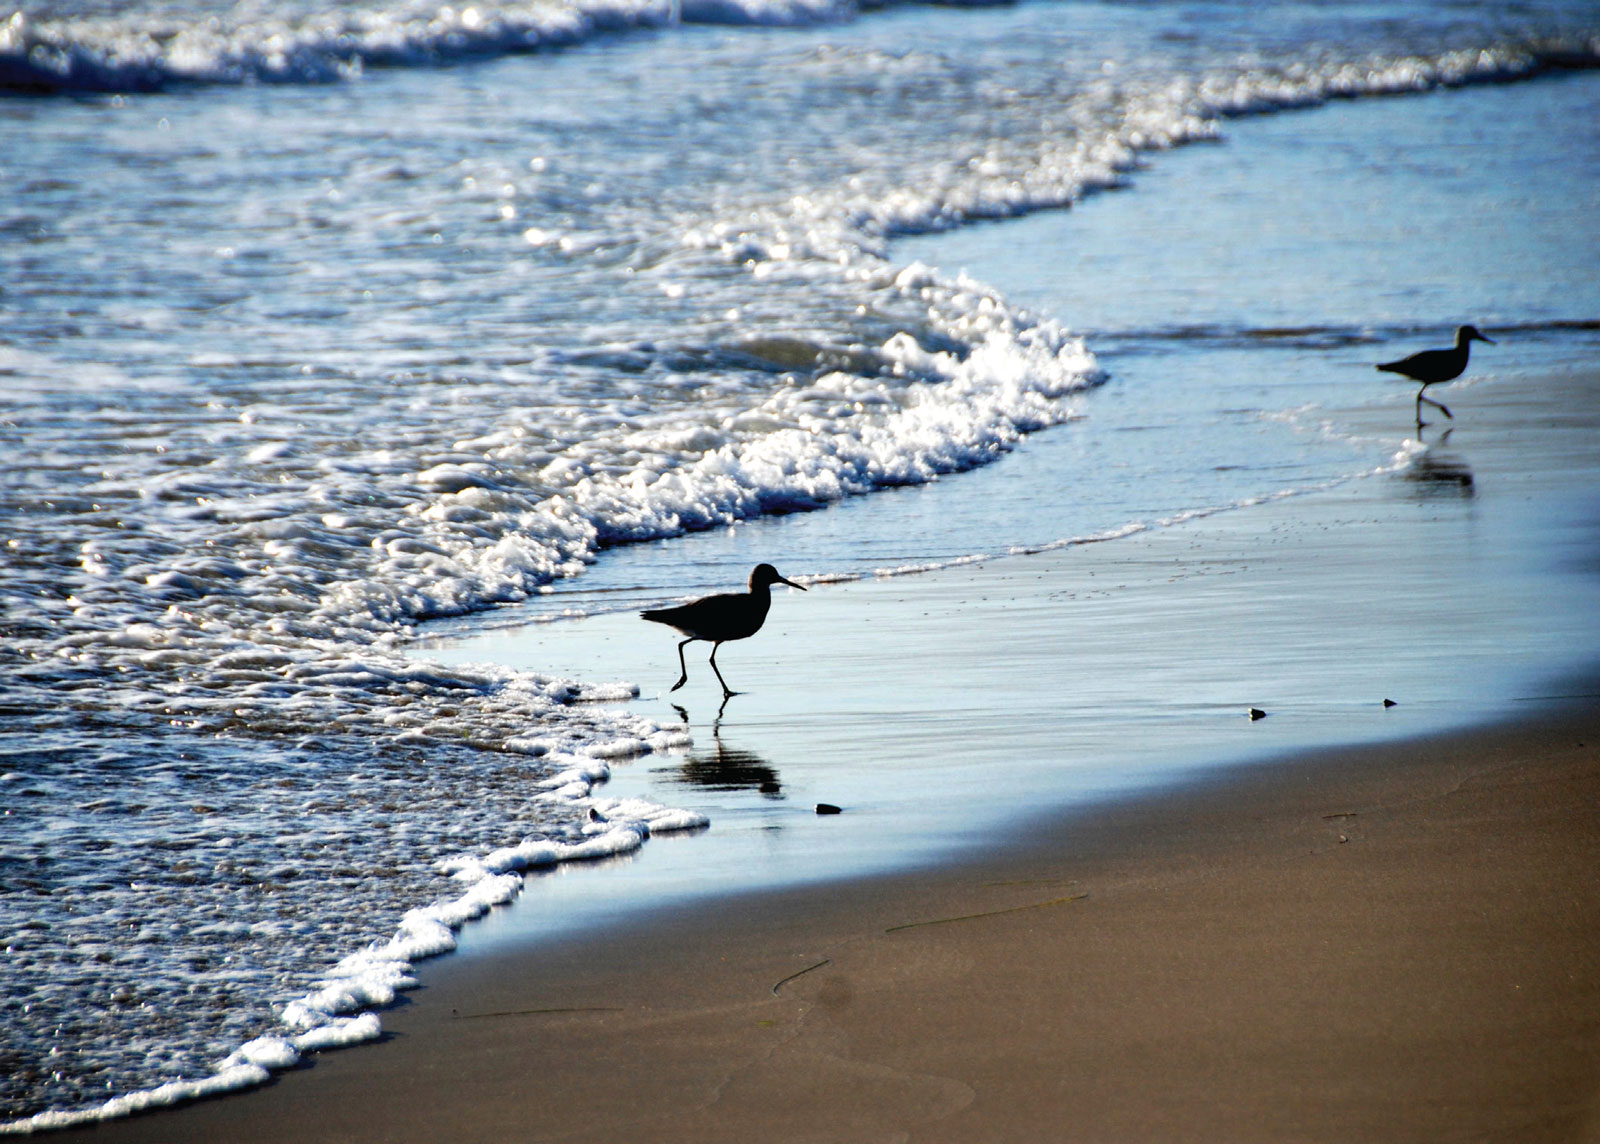 Willets in the surf, Santa Barbara, California